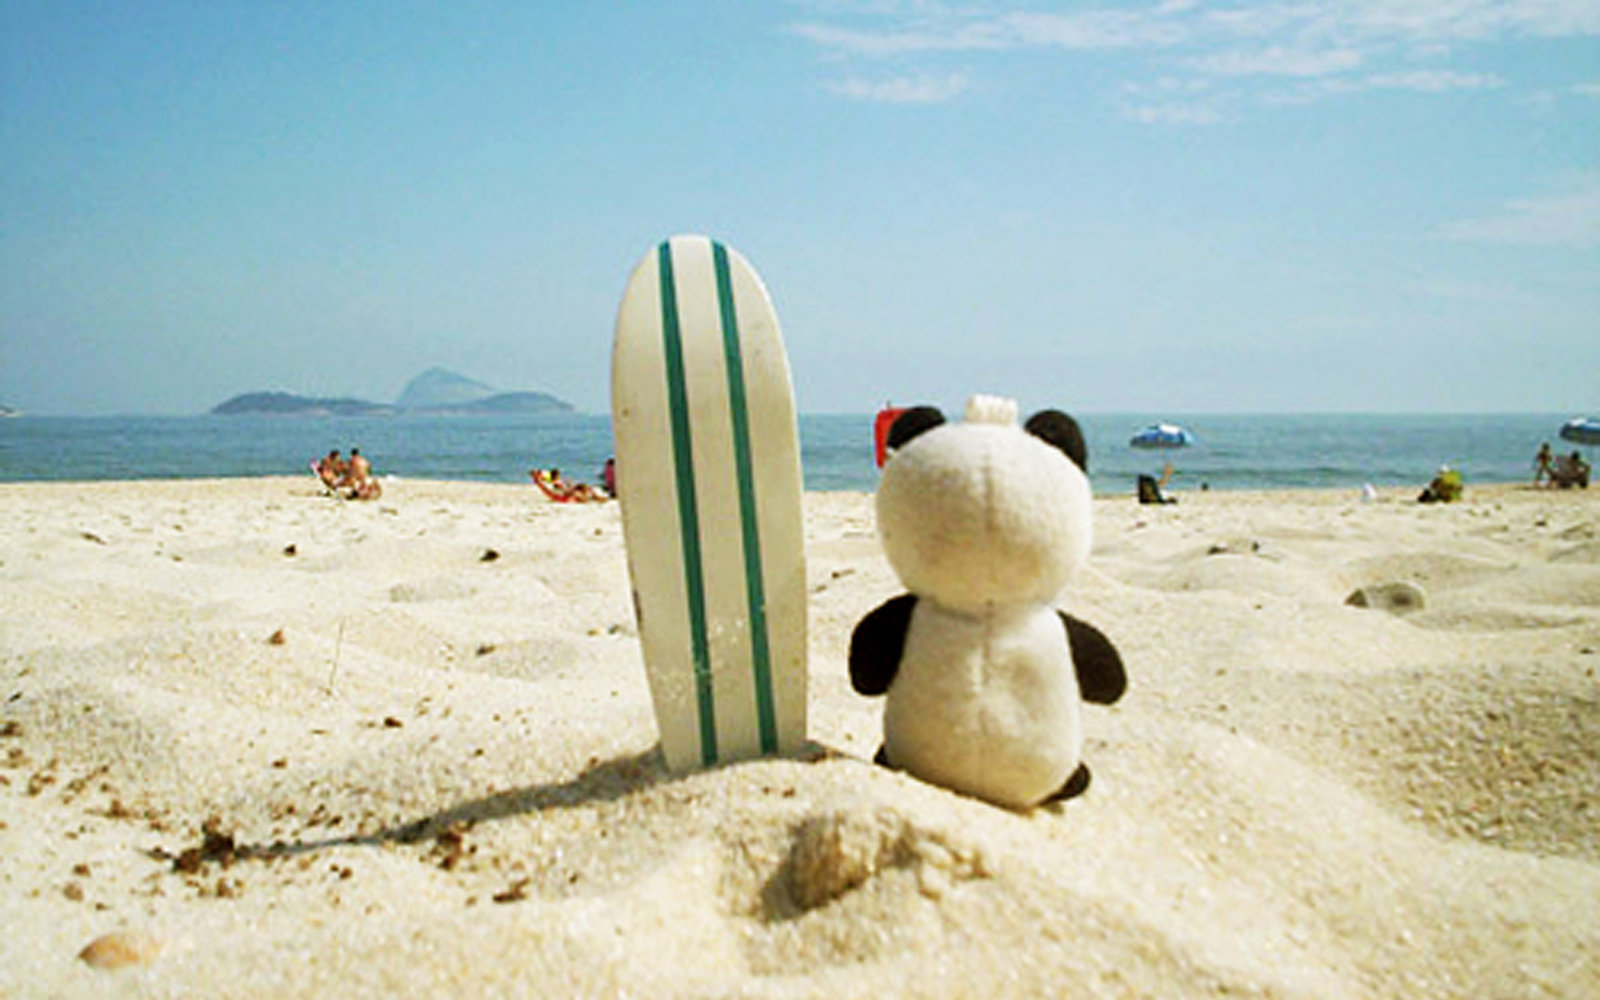 Send Your Stuffed Animal on Vacation With This Travel